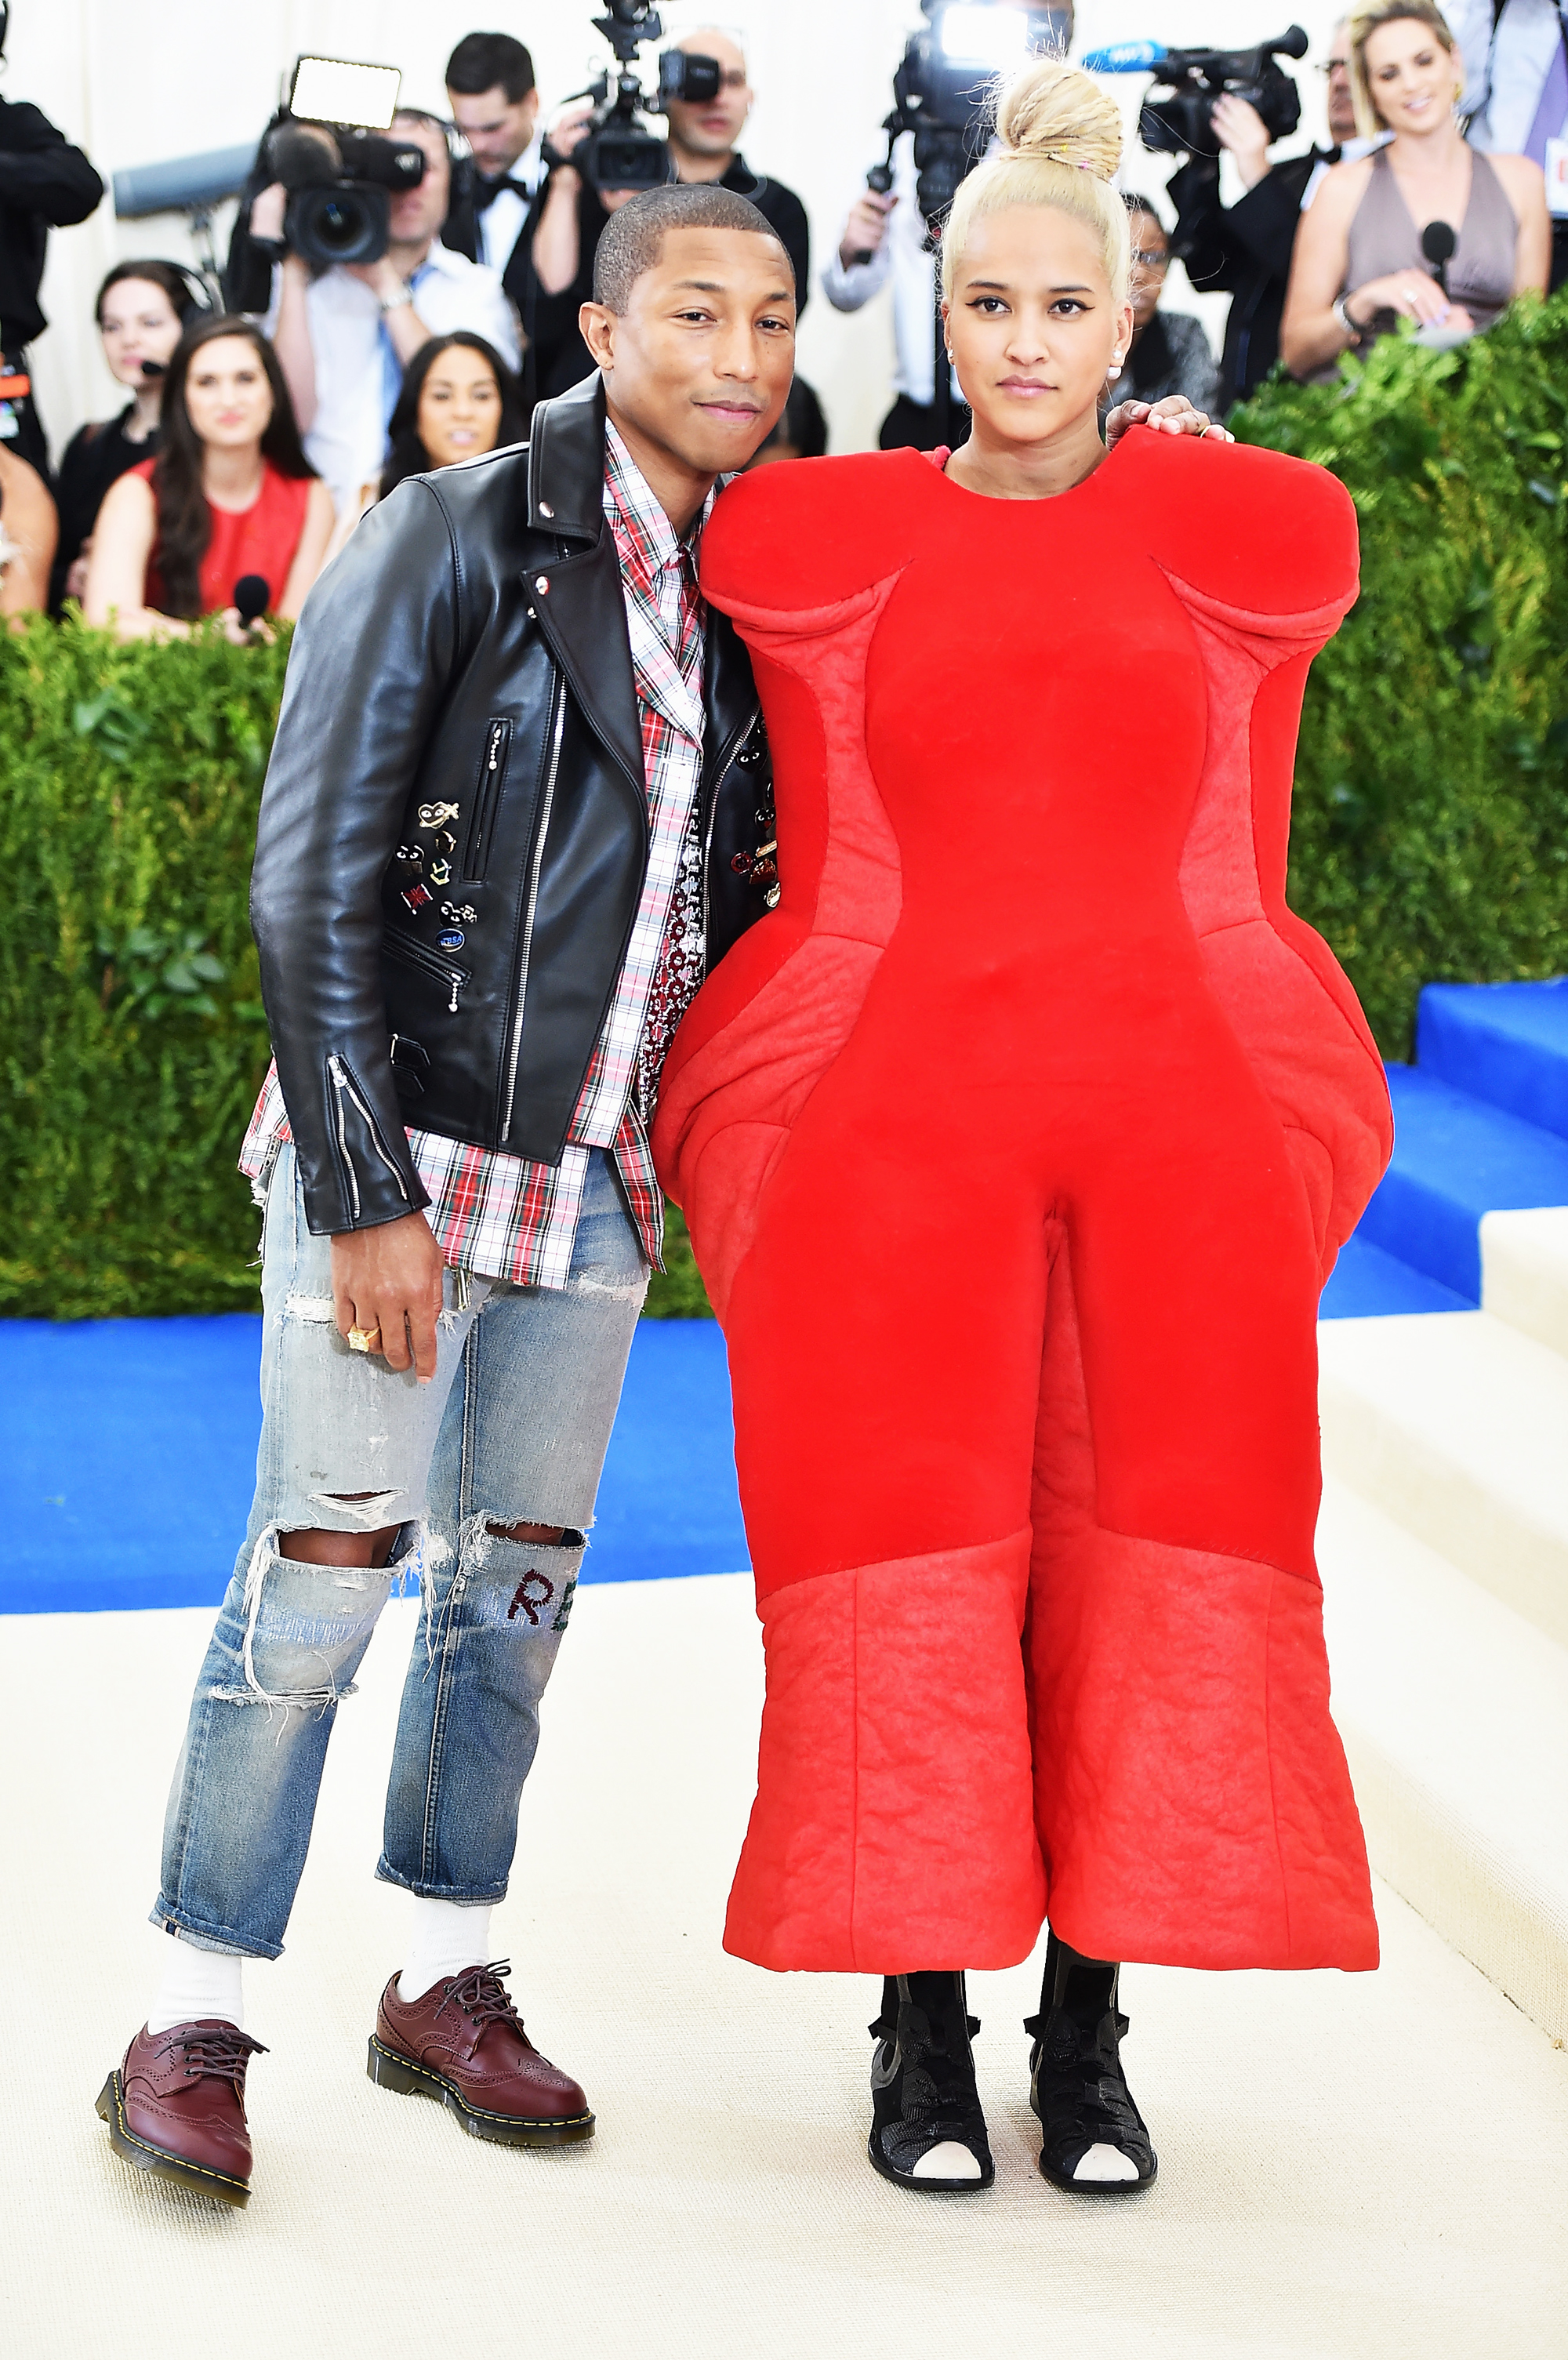 Pharrell Williams and Helen Lasichanh attend The Metropolitan Museum of Art's Costume Institute benefit gala celebrating the opening of the Rei Kawakubo/Comme des Garçons: Art of the In-Between exhibition in New York City, on May 1, 2017.